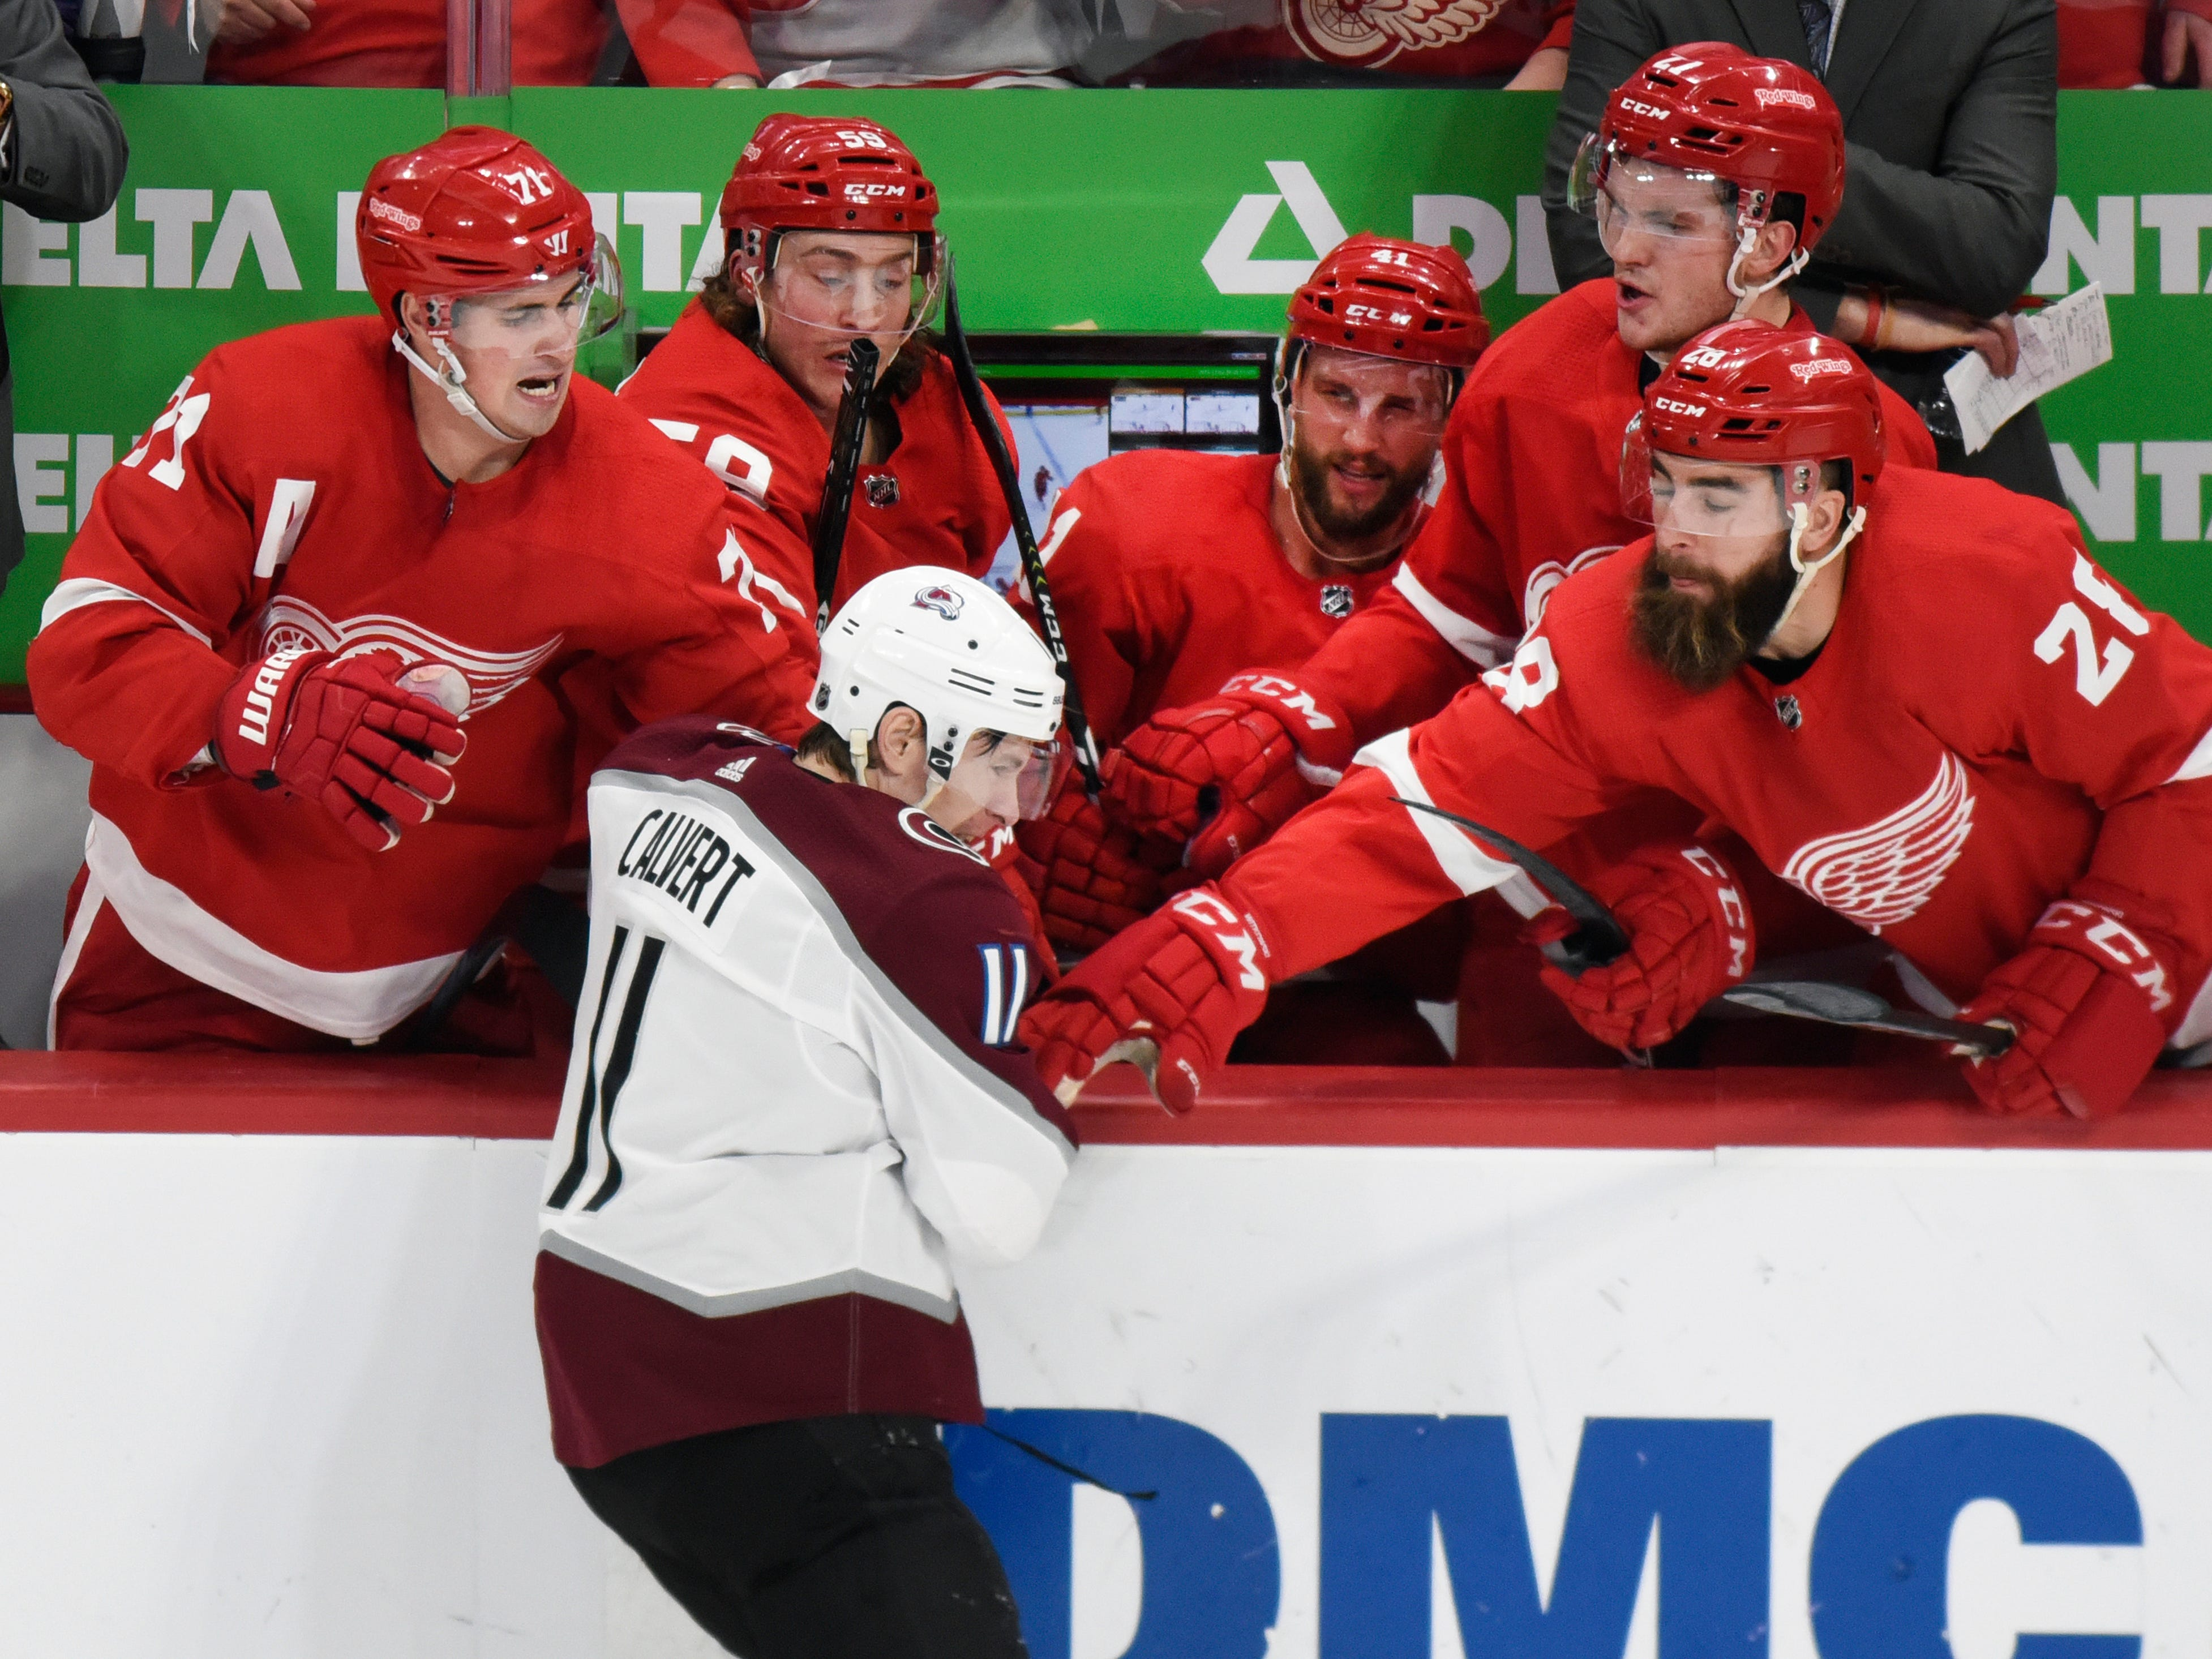 Tyler Bertuzzi (59) was suspended for two games for punching Colorado Avalanche left wing Matt Calvert from the bench. Lost pay: $15,053.76.